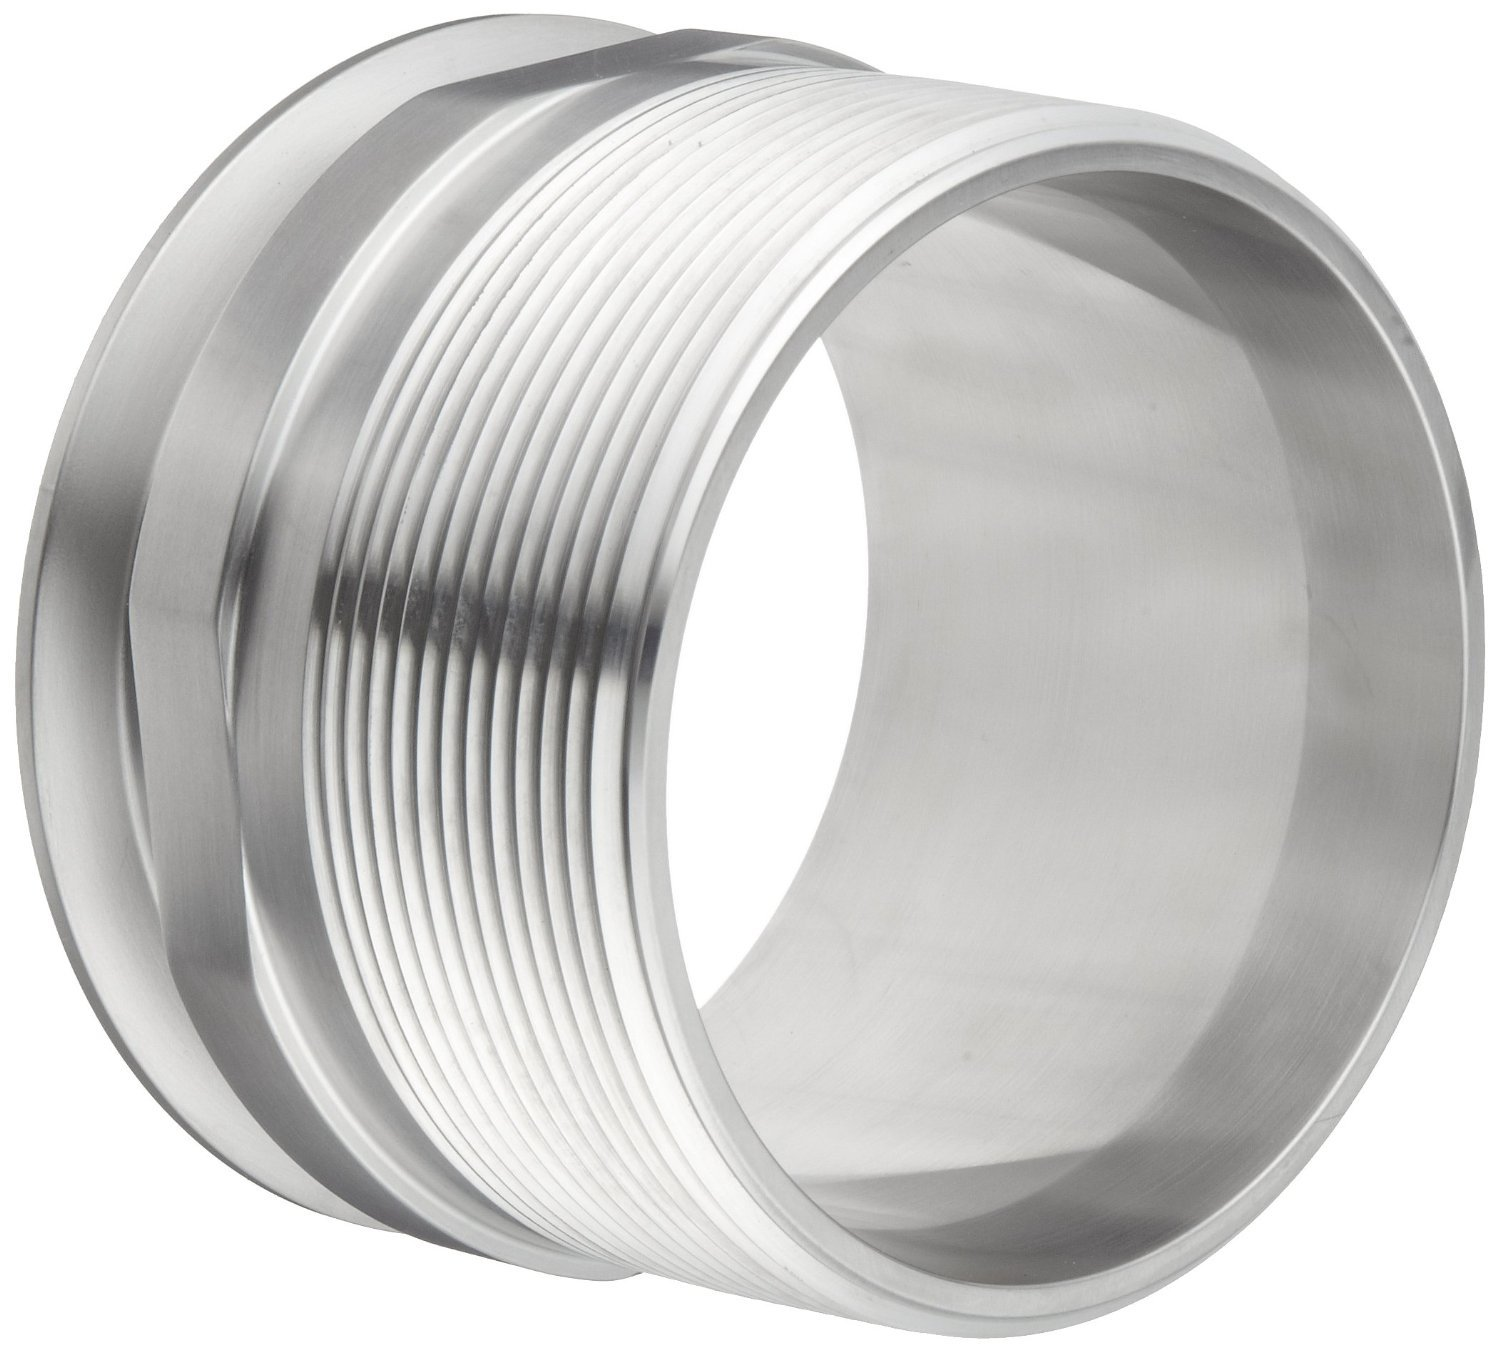 Dixon 21MP-G400 Stainless Steel 304 Sanitary Fitting, Clamp Adapter, 4'' Tube OD x 4'' NPT Male